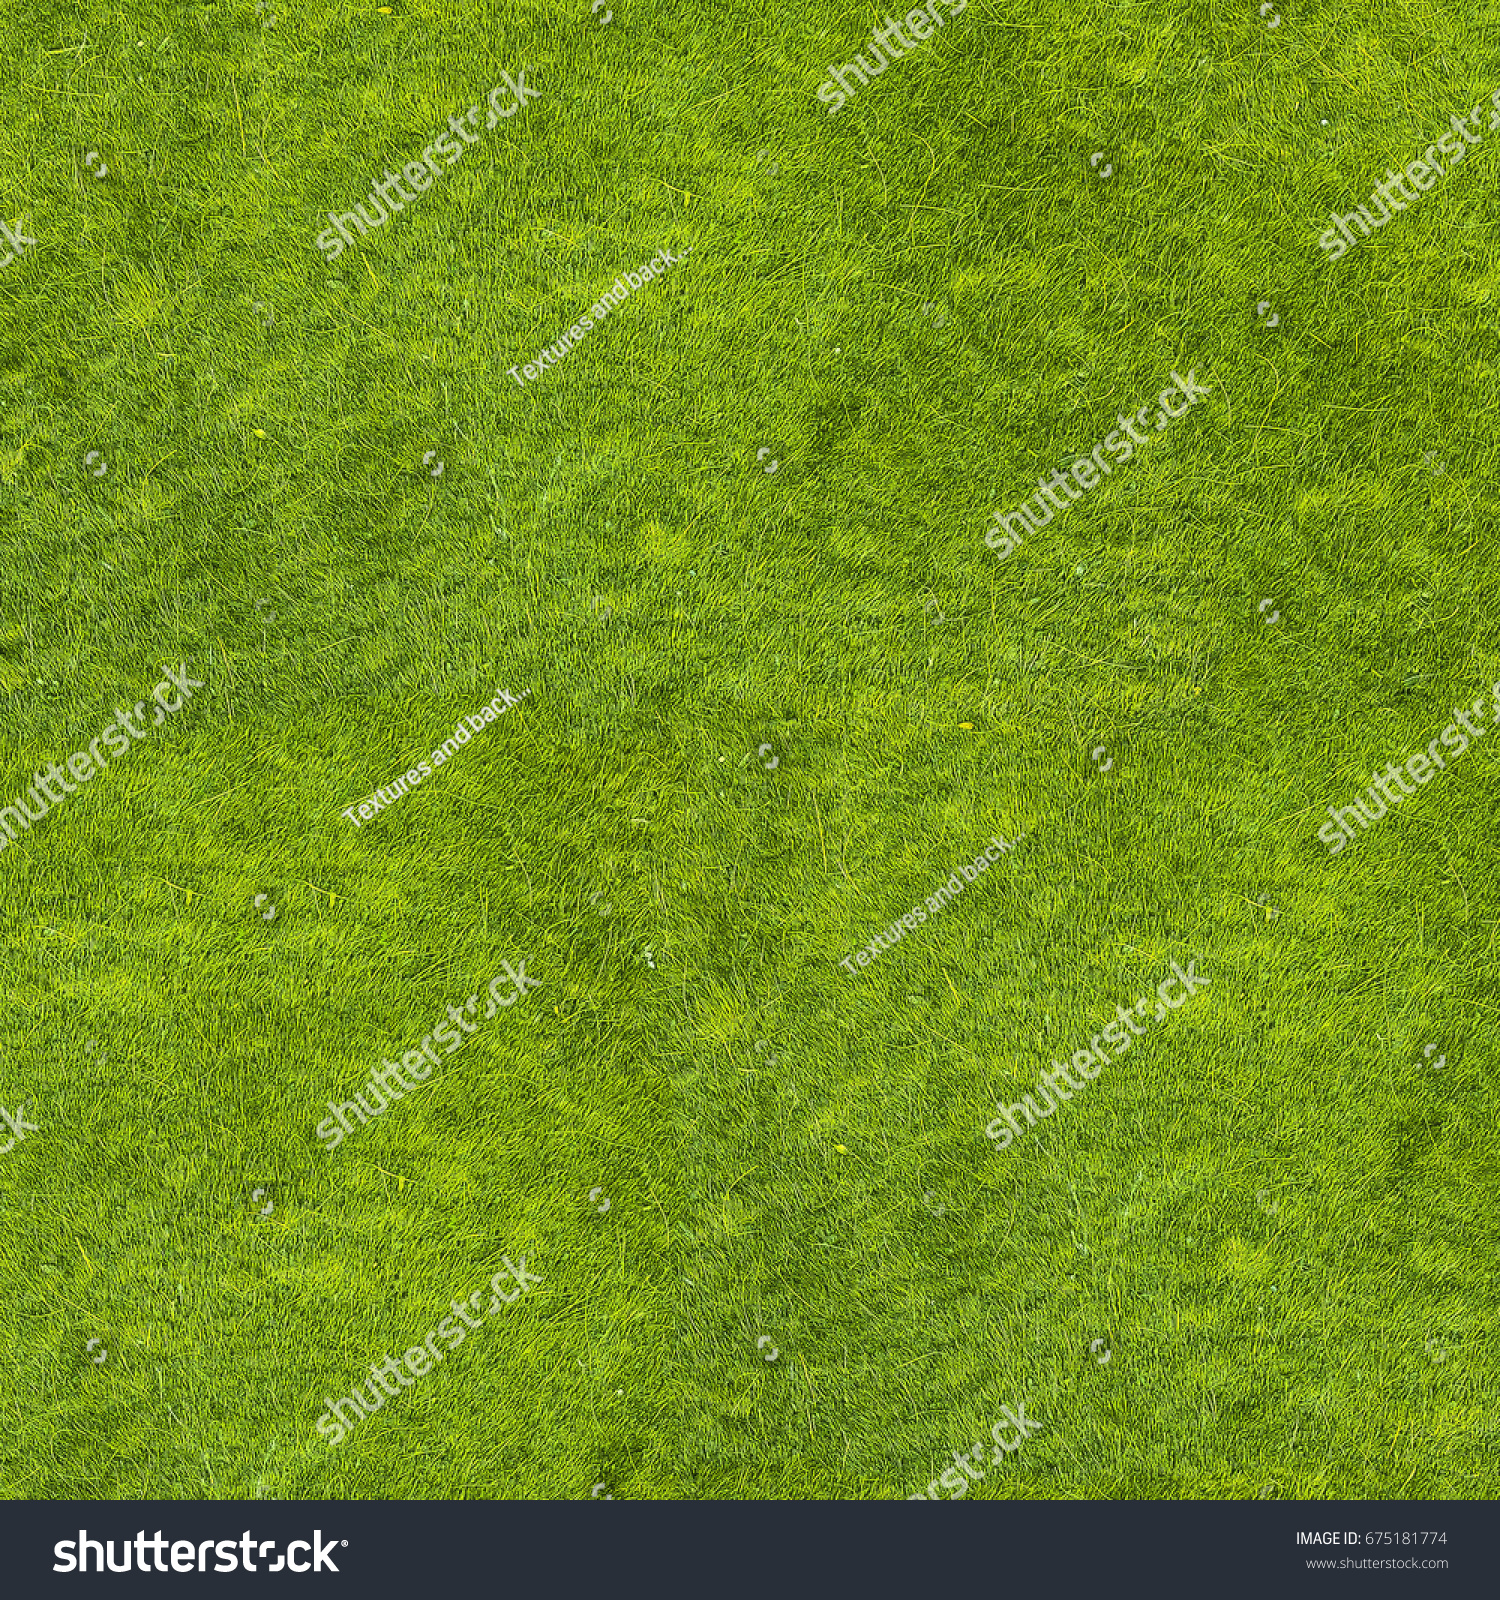 grass texture game. Texture Green Grass. Lawn Grass, The Field For Game. Background Of Grass Game